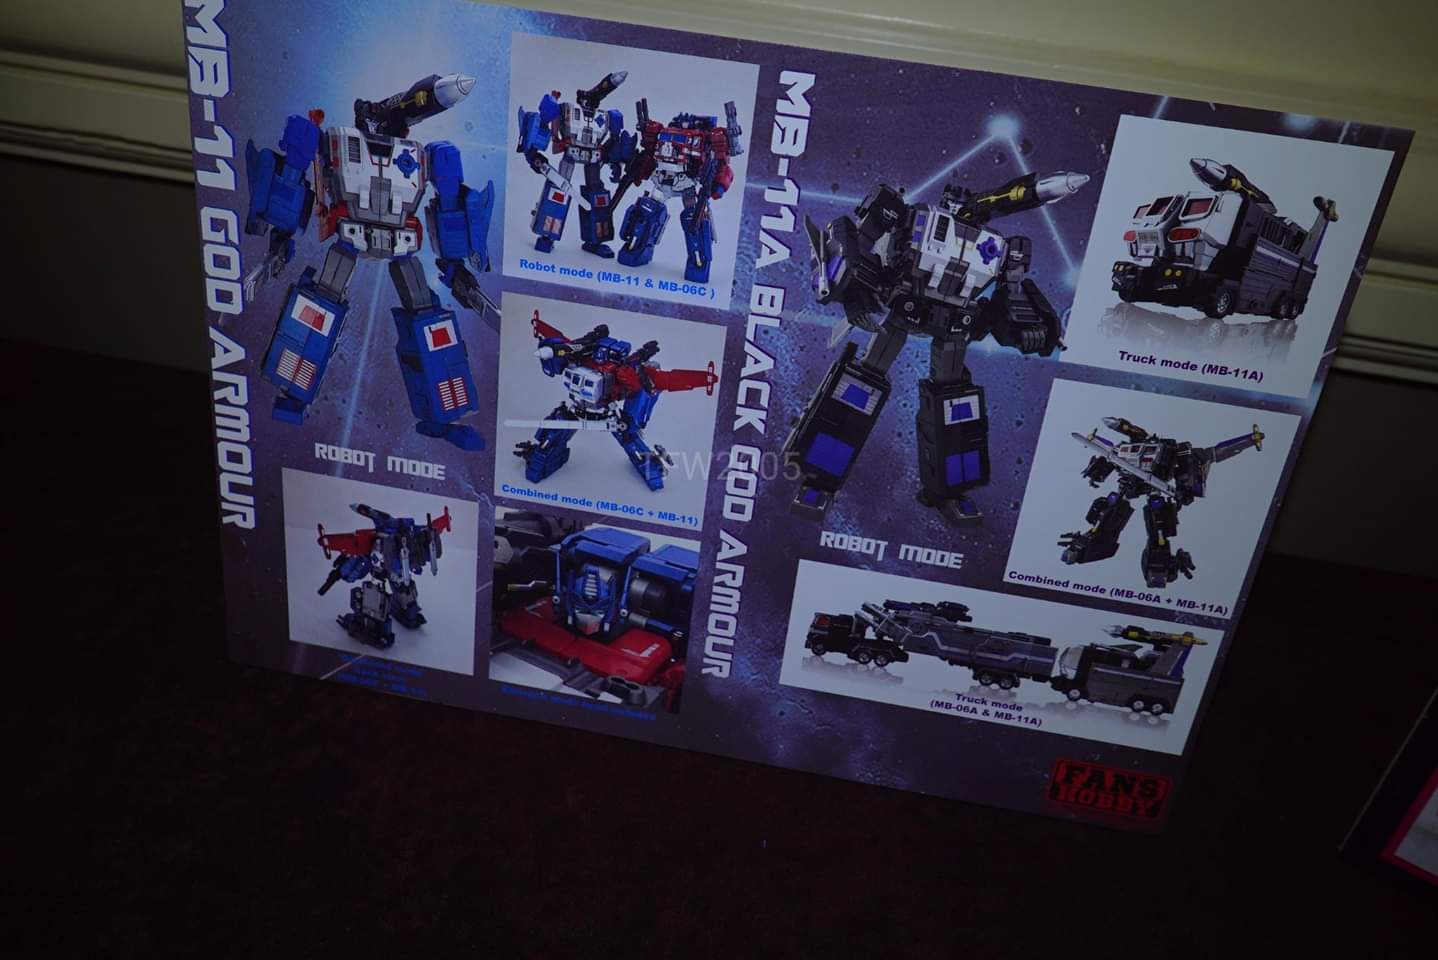 [FansHobby] Produit Tiers - MB-06 Power Baser (aka Powermaster Optimus) + MB-11 God Armour (aka Godbomber) - TF Masterforce - Page 4 8PWnCwC7_o